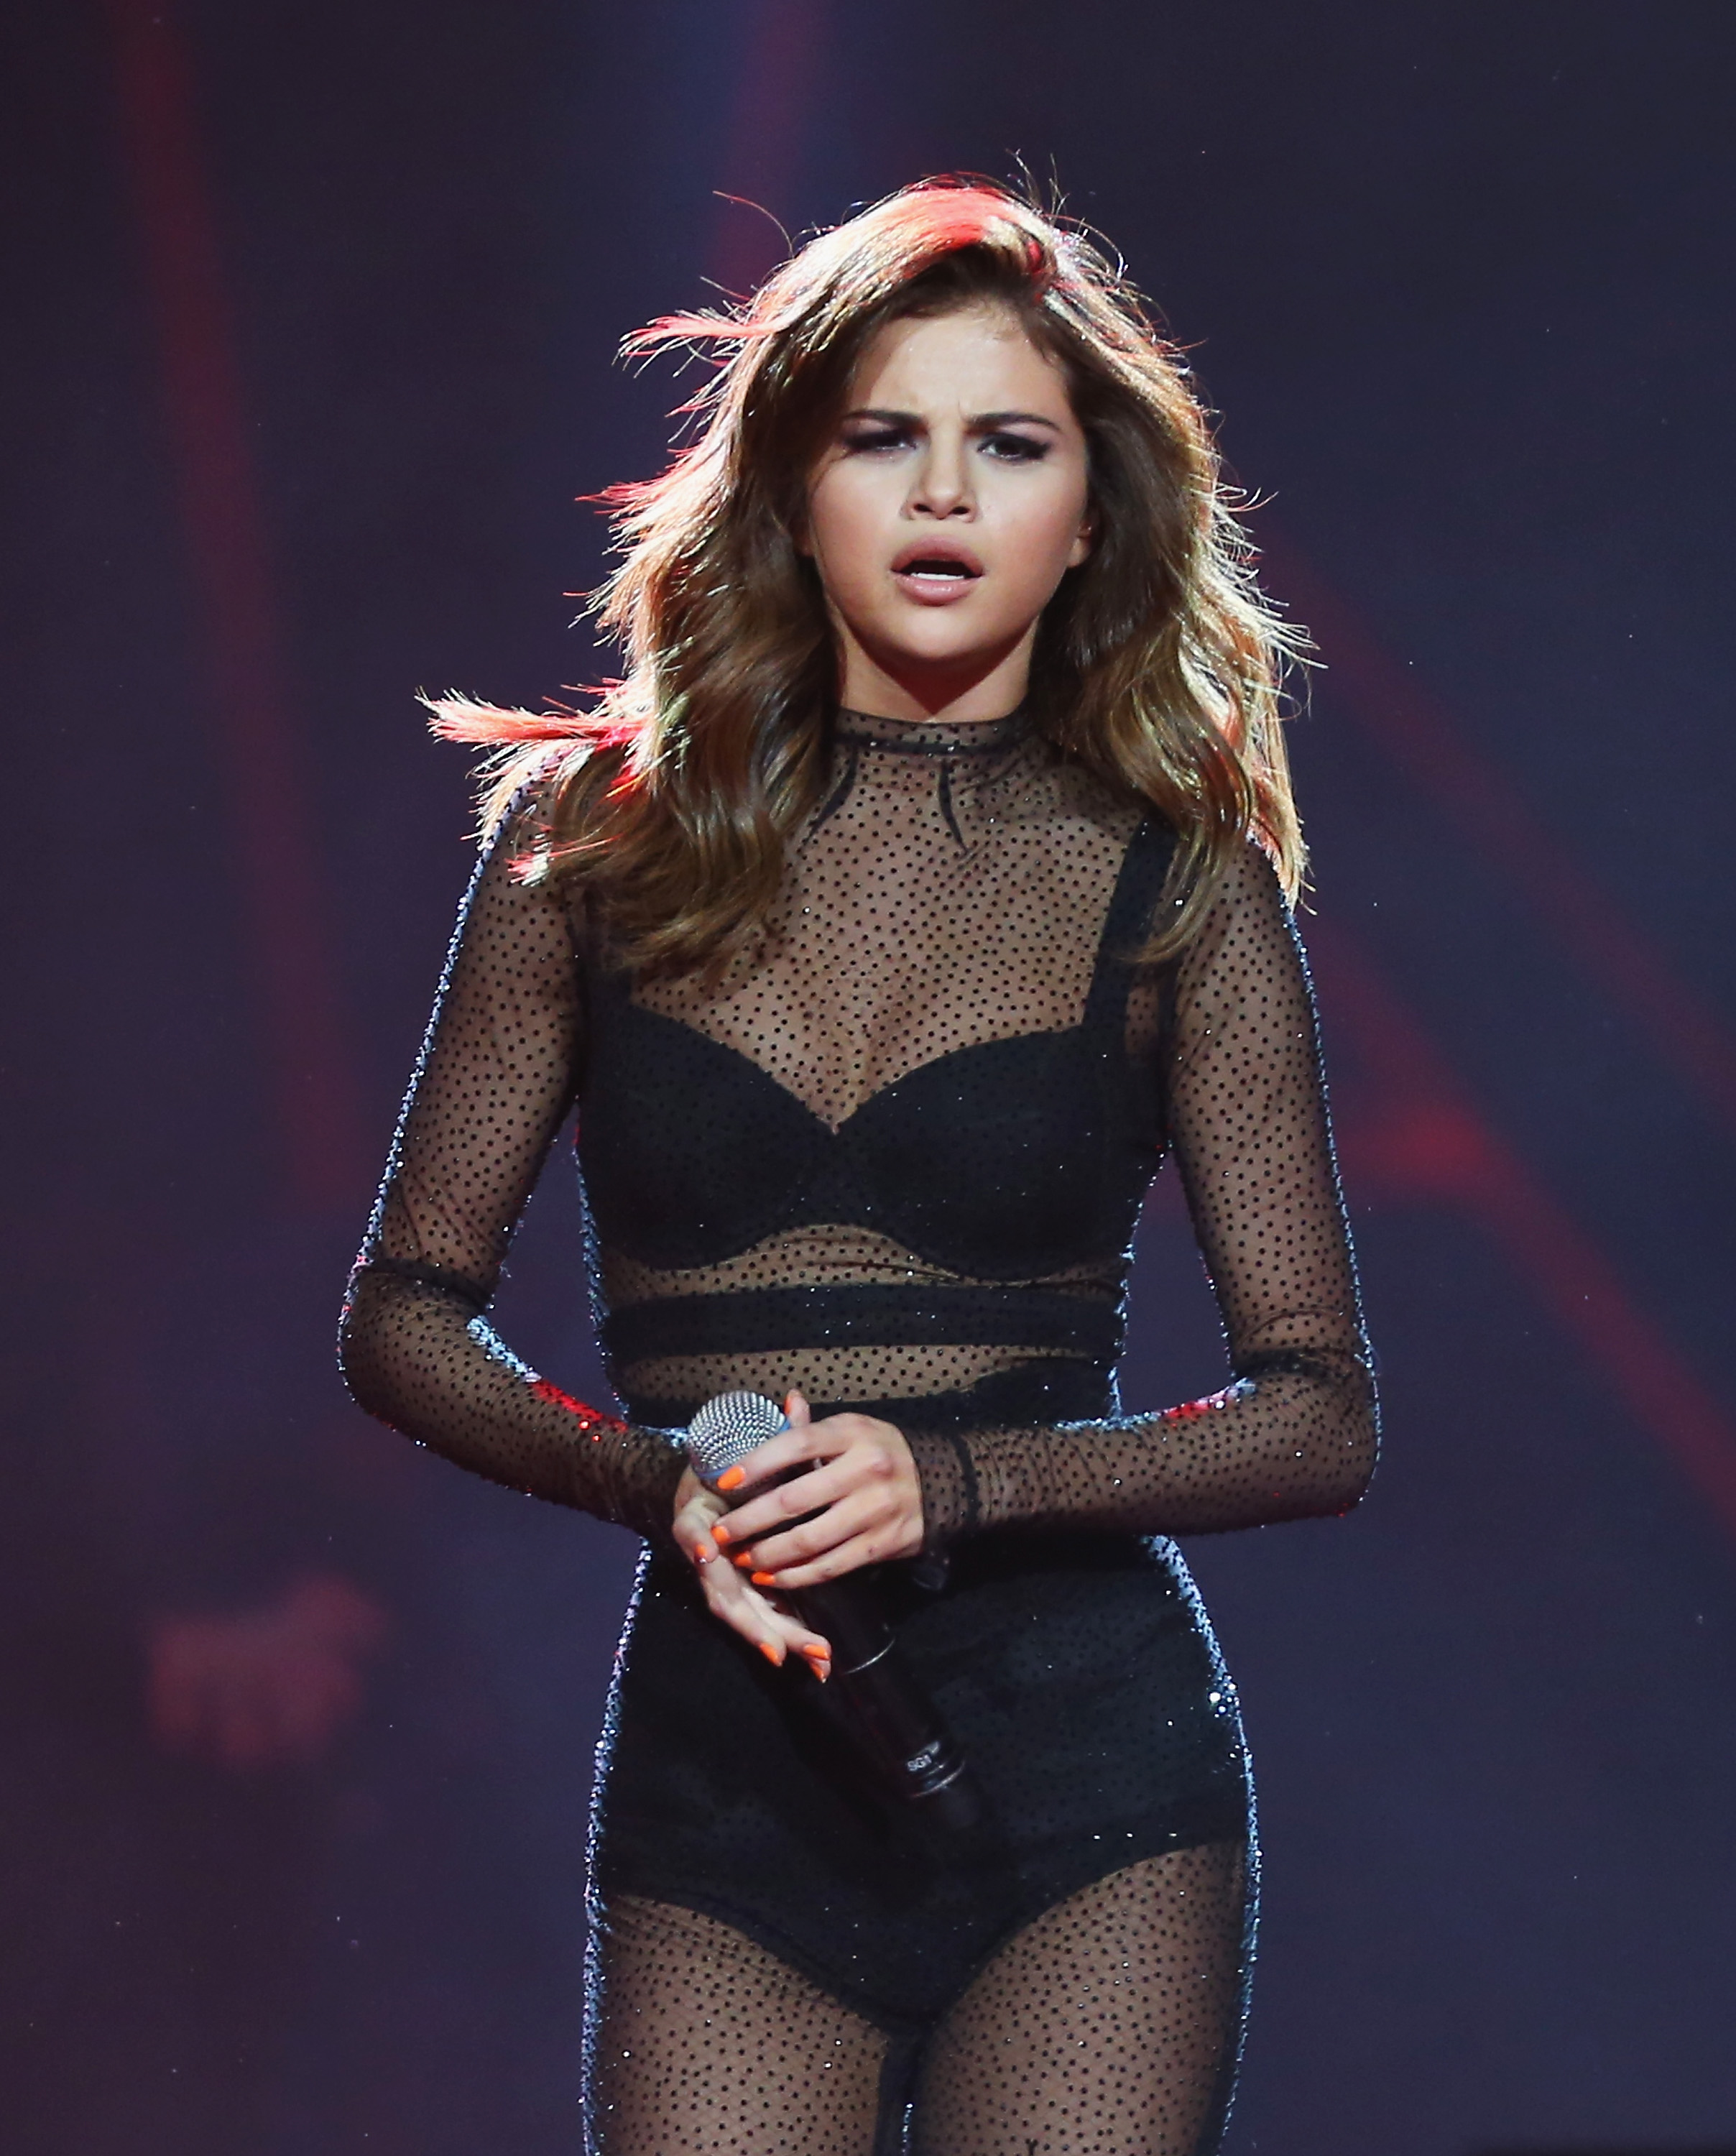 Selena Gomes on the stage - Selena Gomez Net Worth, Pics, Wallpapers, Career and Biography